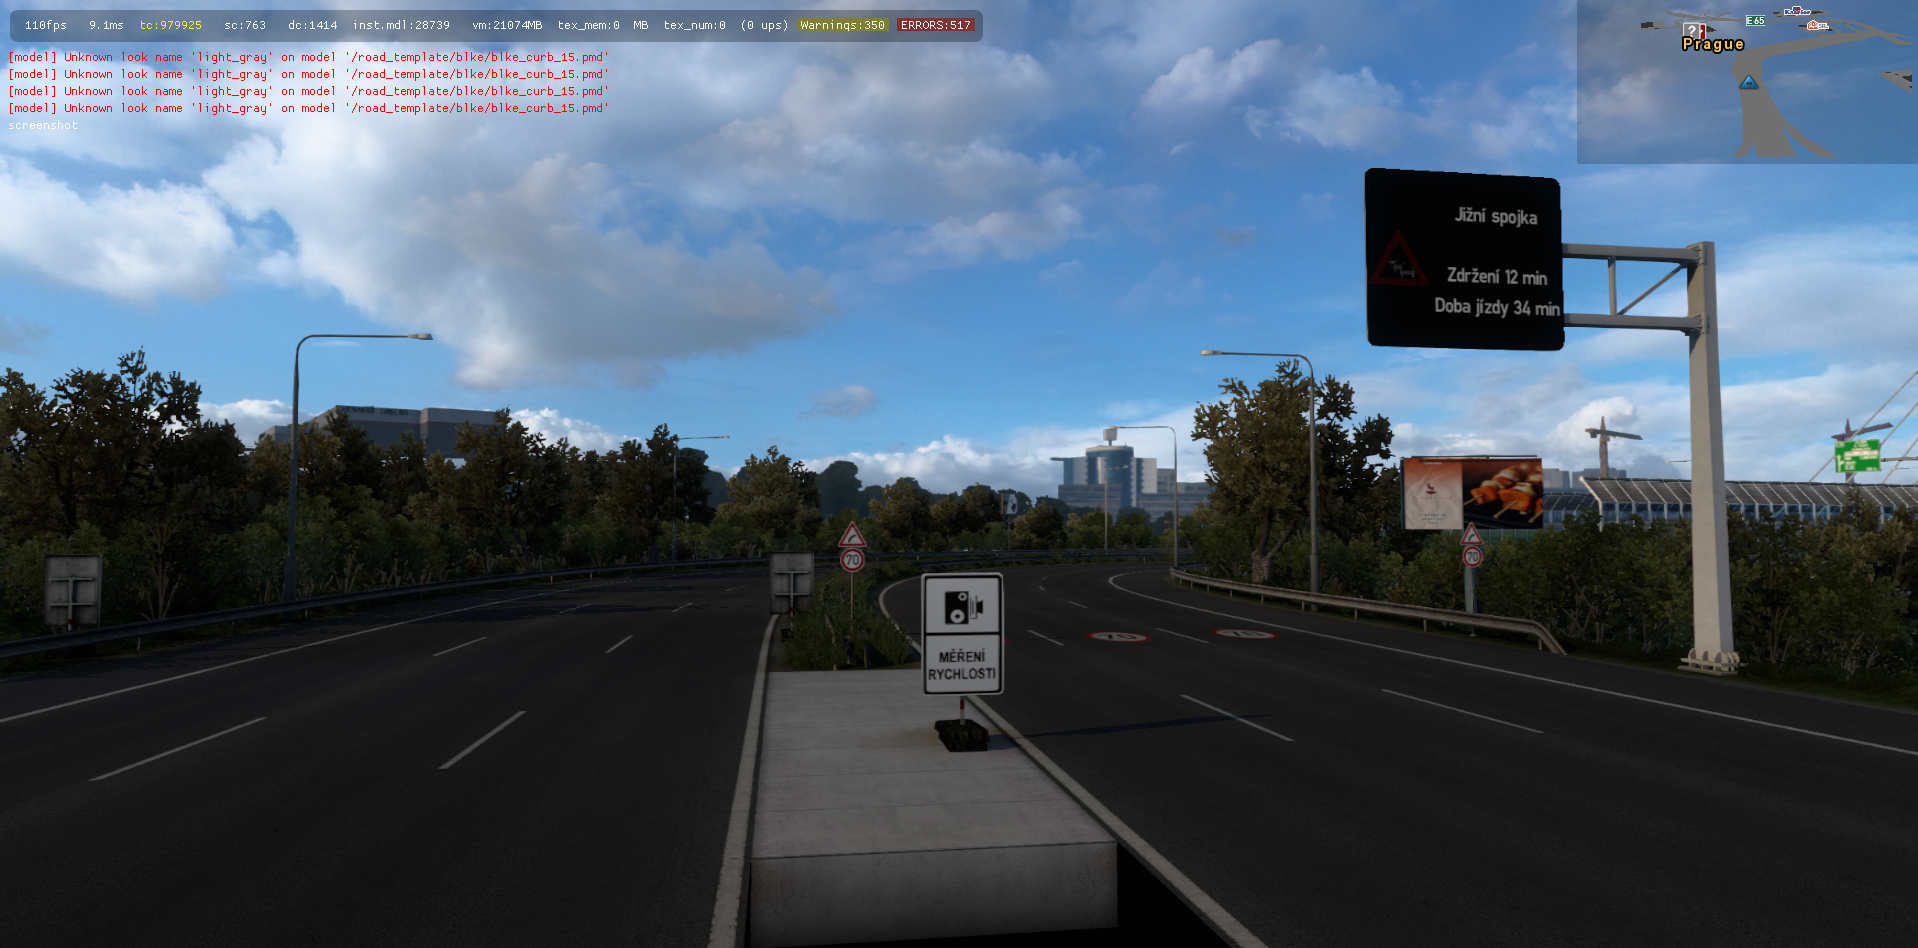 ets2_20210516_213541_00.png